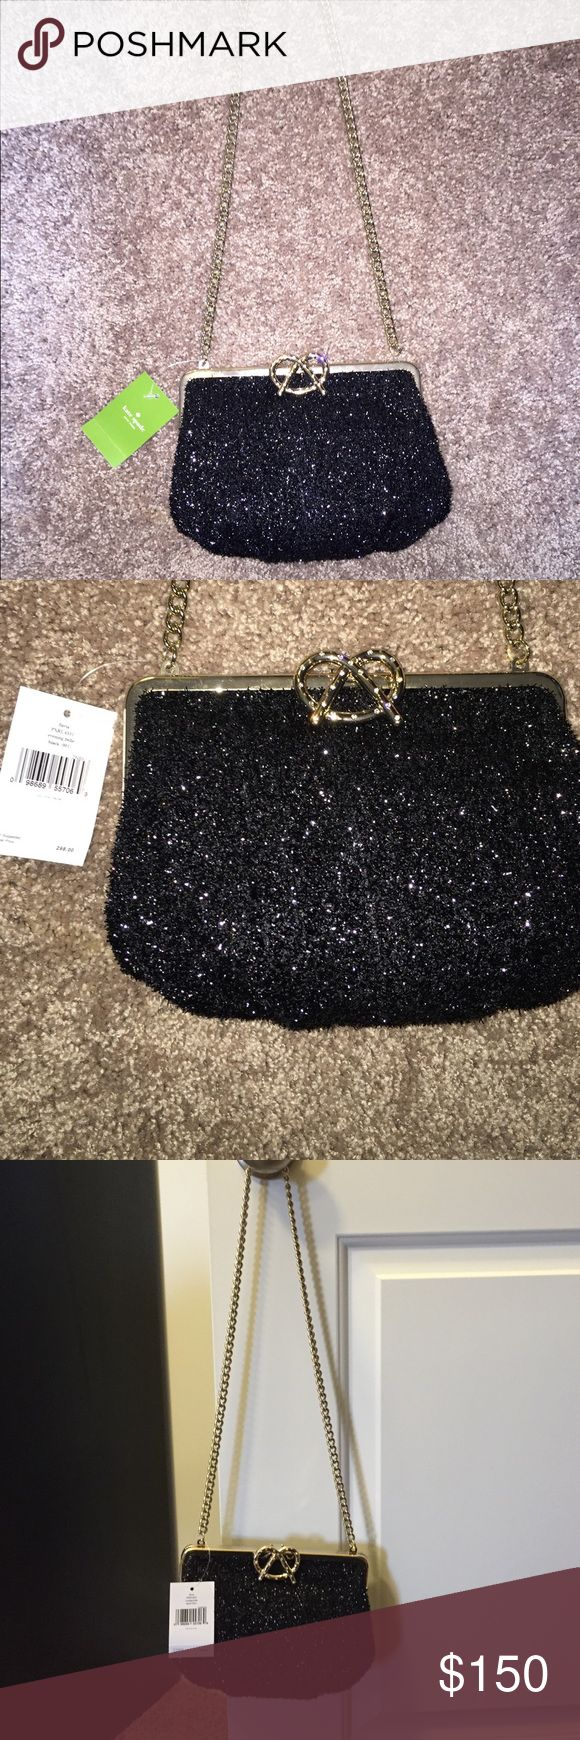 Kate Spade Long Chain Pretzel Clutch w. Rhijstones Brand new with tags. Kate Spade Pretzel Clutch with Chain. Shimmery black and silver rhinestone encrusted pretzel . Brand new never used originally $298.00 comes w dust bag as well. kate spade Bags Clutches & Wristlets